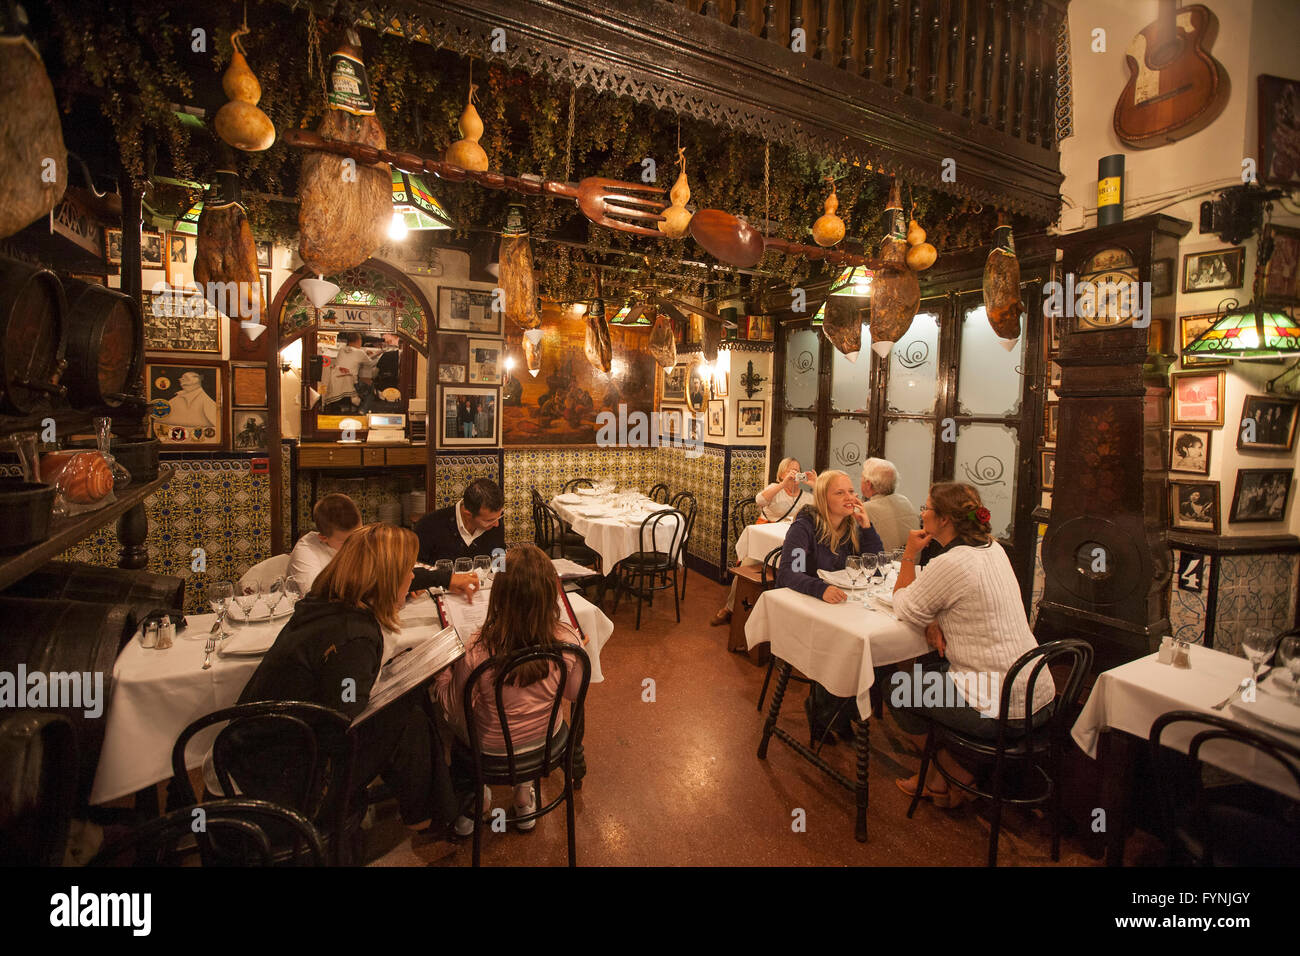 Barcelona Los Caracoles traditional Restaurant in historic center - Stock Image